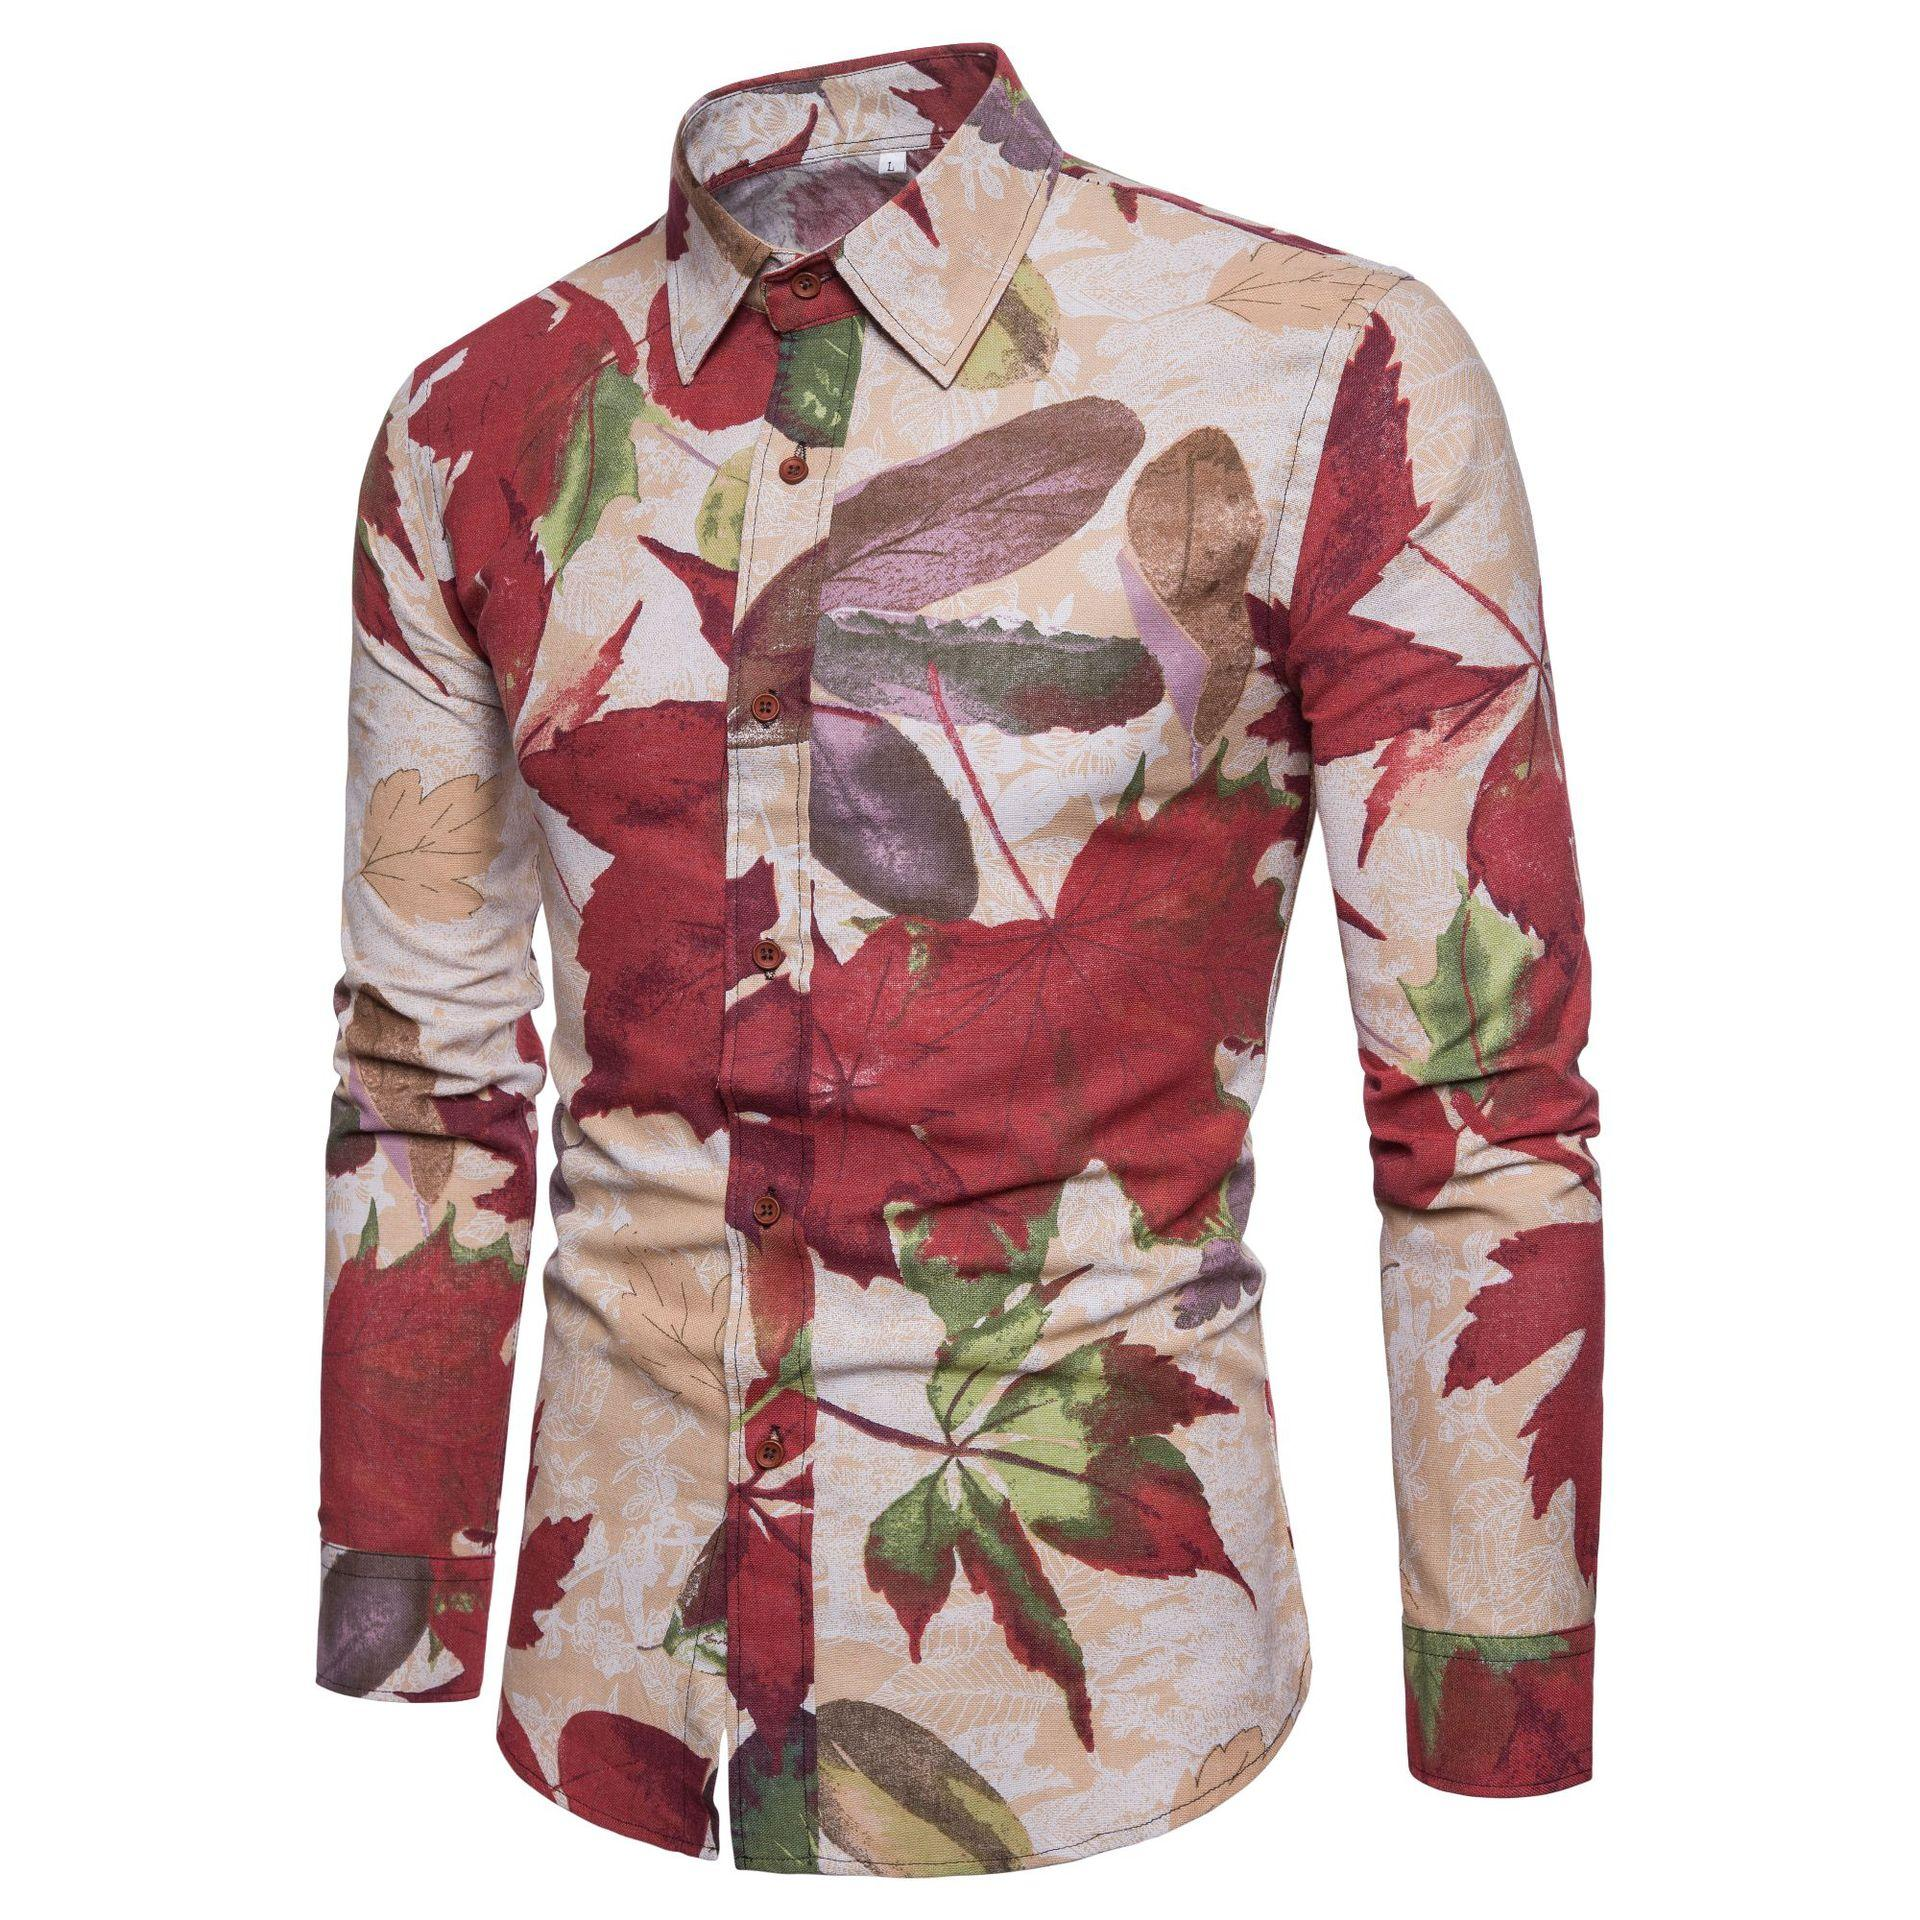 Hawaiian Shirt Men 39 s clothing Slim fit Social Shirt for Men Long Sleeve Plus size Flower Casual Blouse Men Floral in Casual Shirts from Men 39 s Clothing